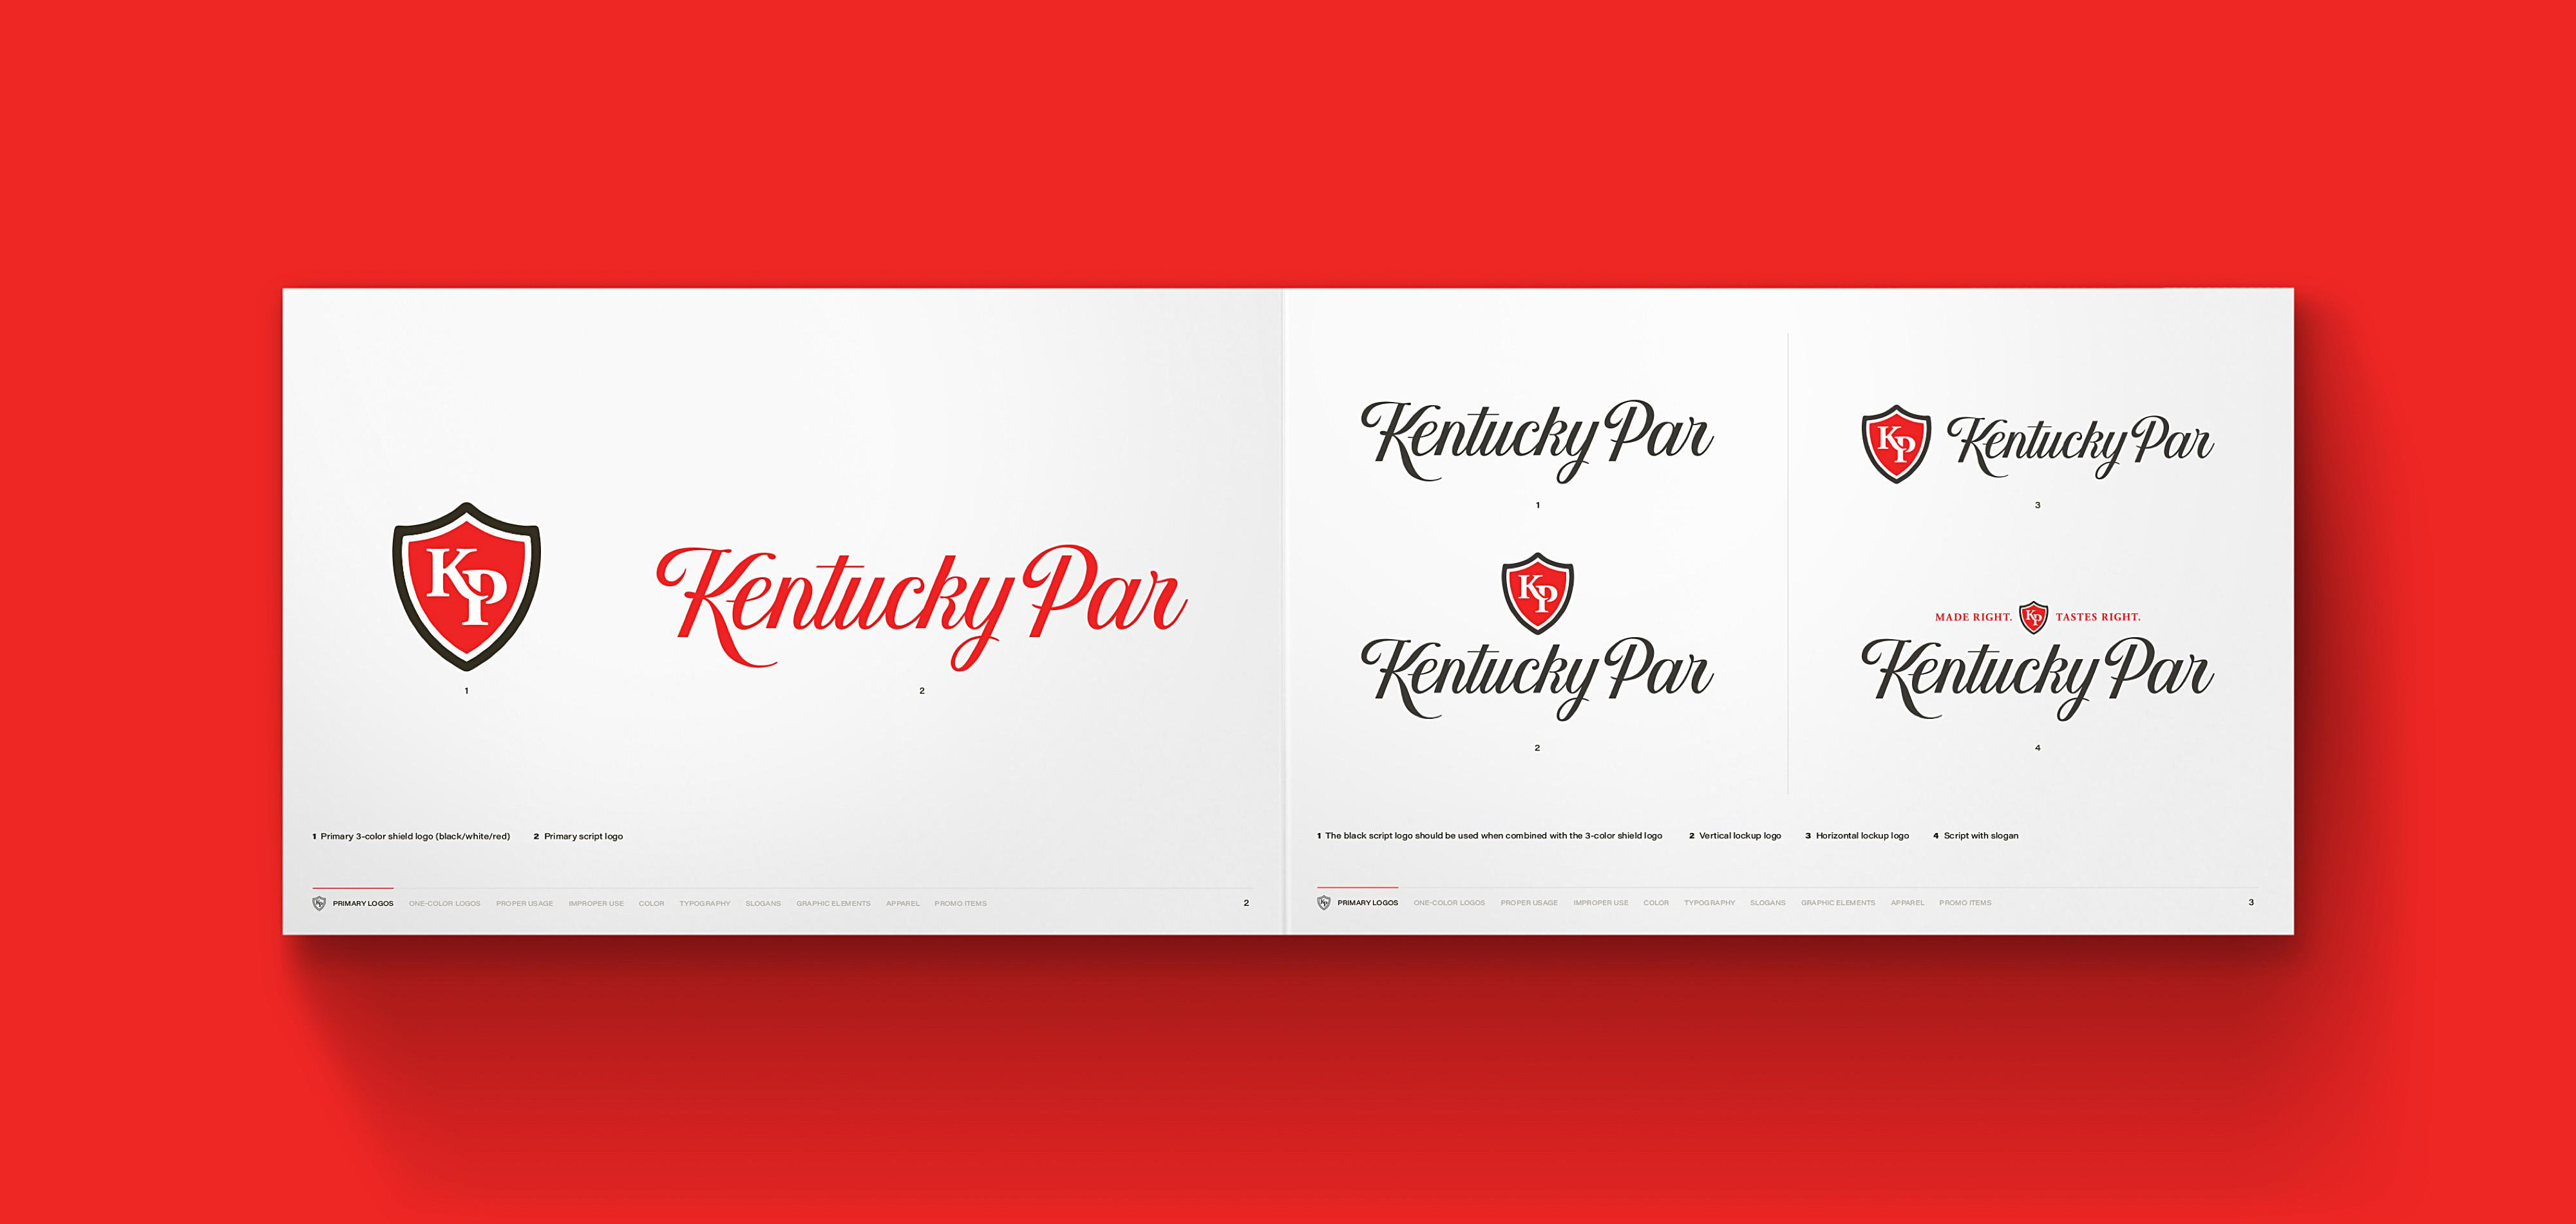 Kentucky Par Bourbon Brand Guidelines